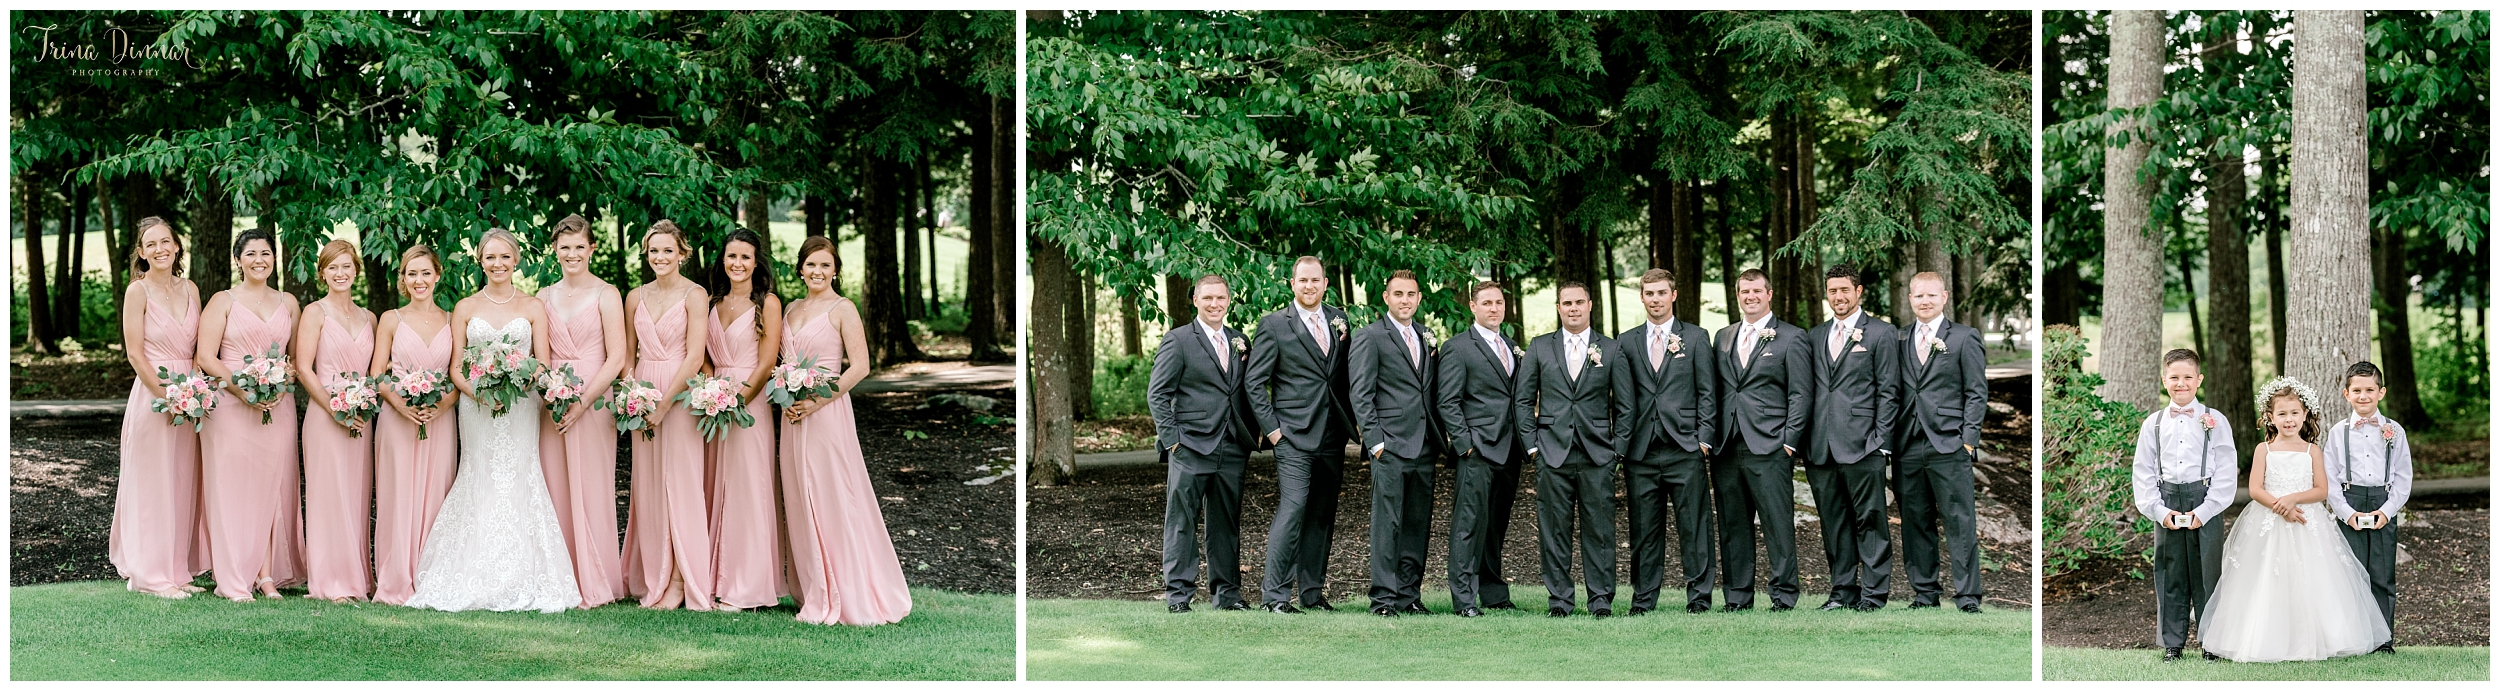 Ashton and John's wedding party portraits